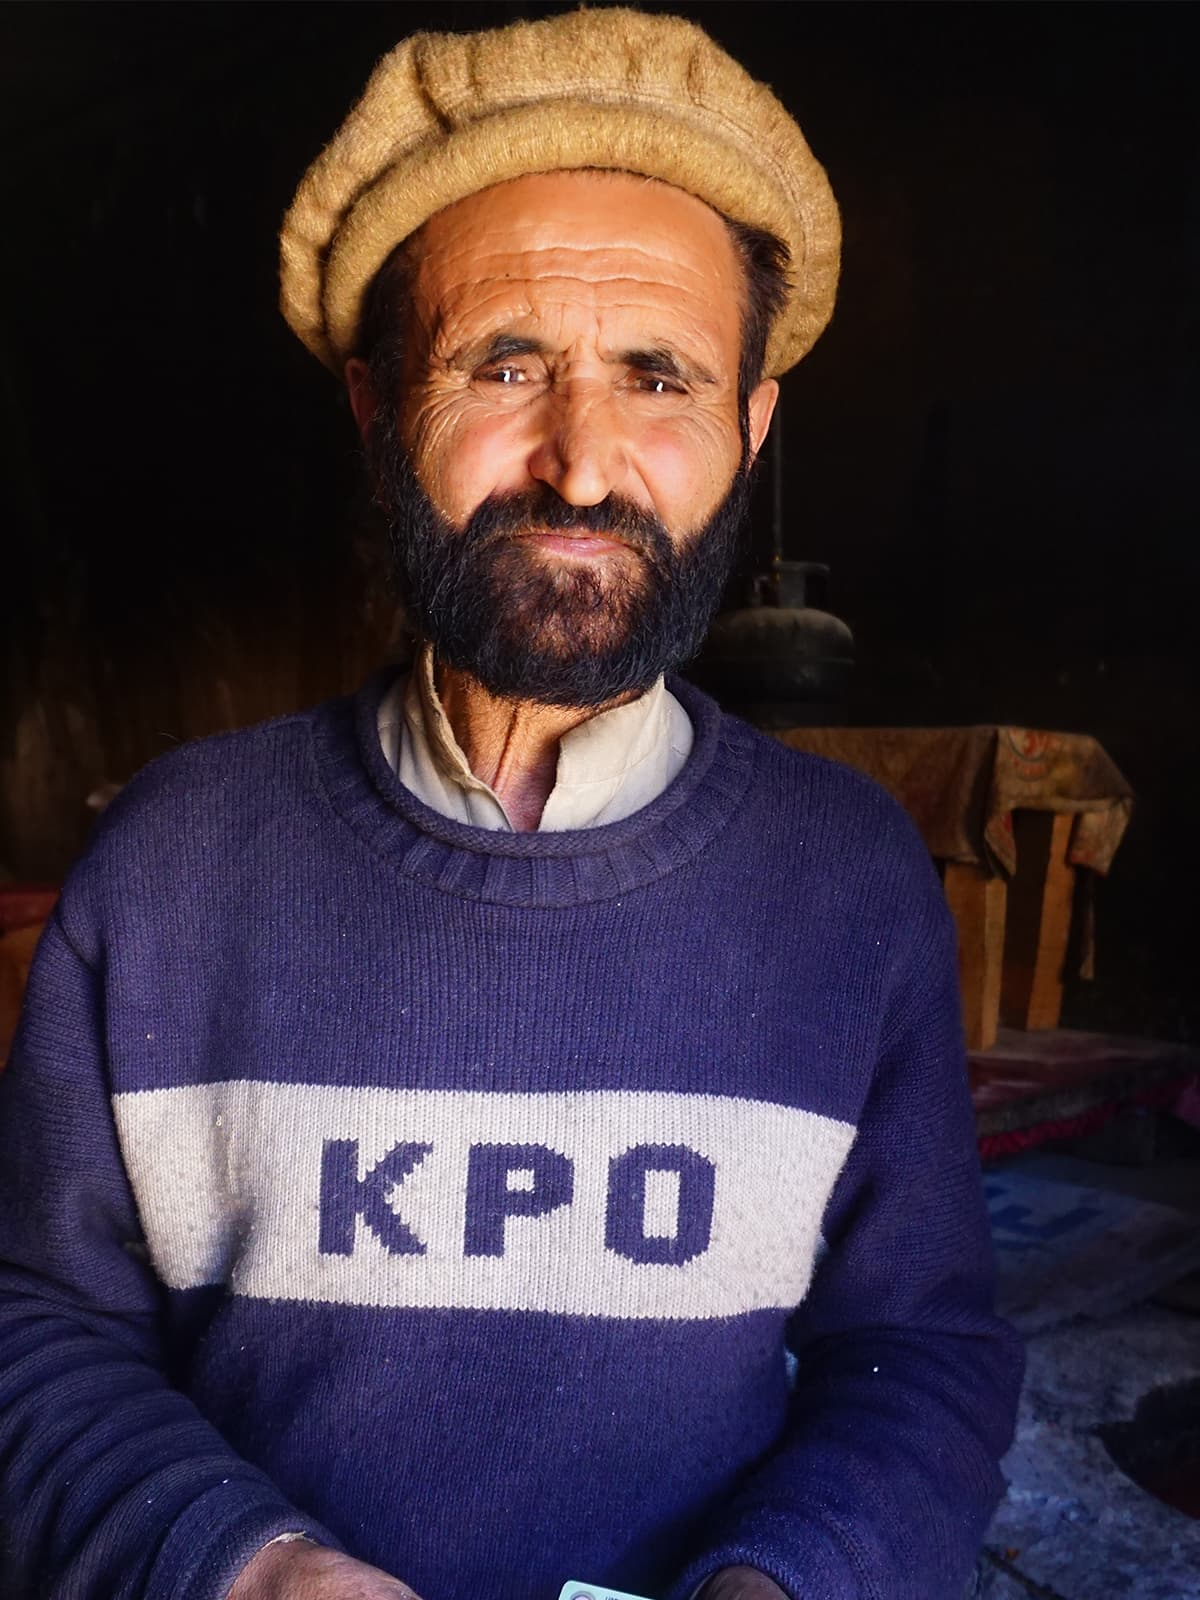 A Wakhi man from Ishkoman Valley in Gilgit-Baltistan